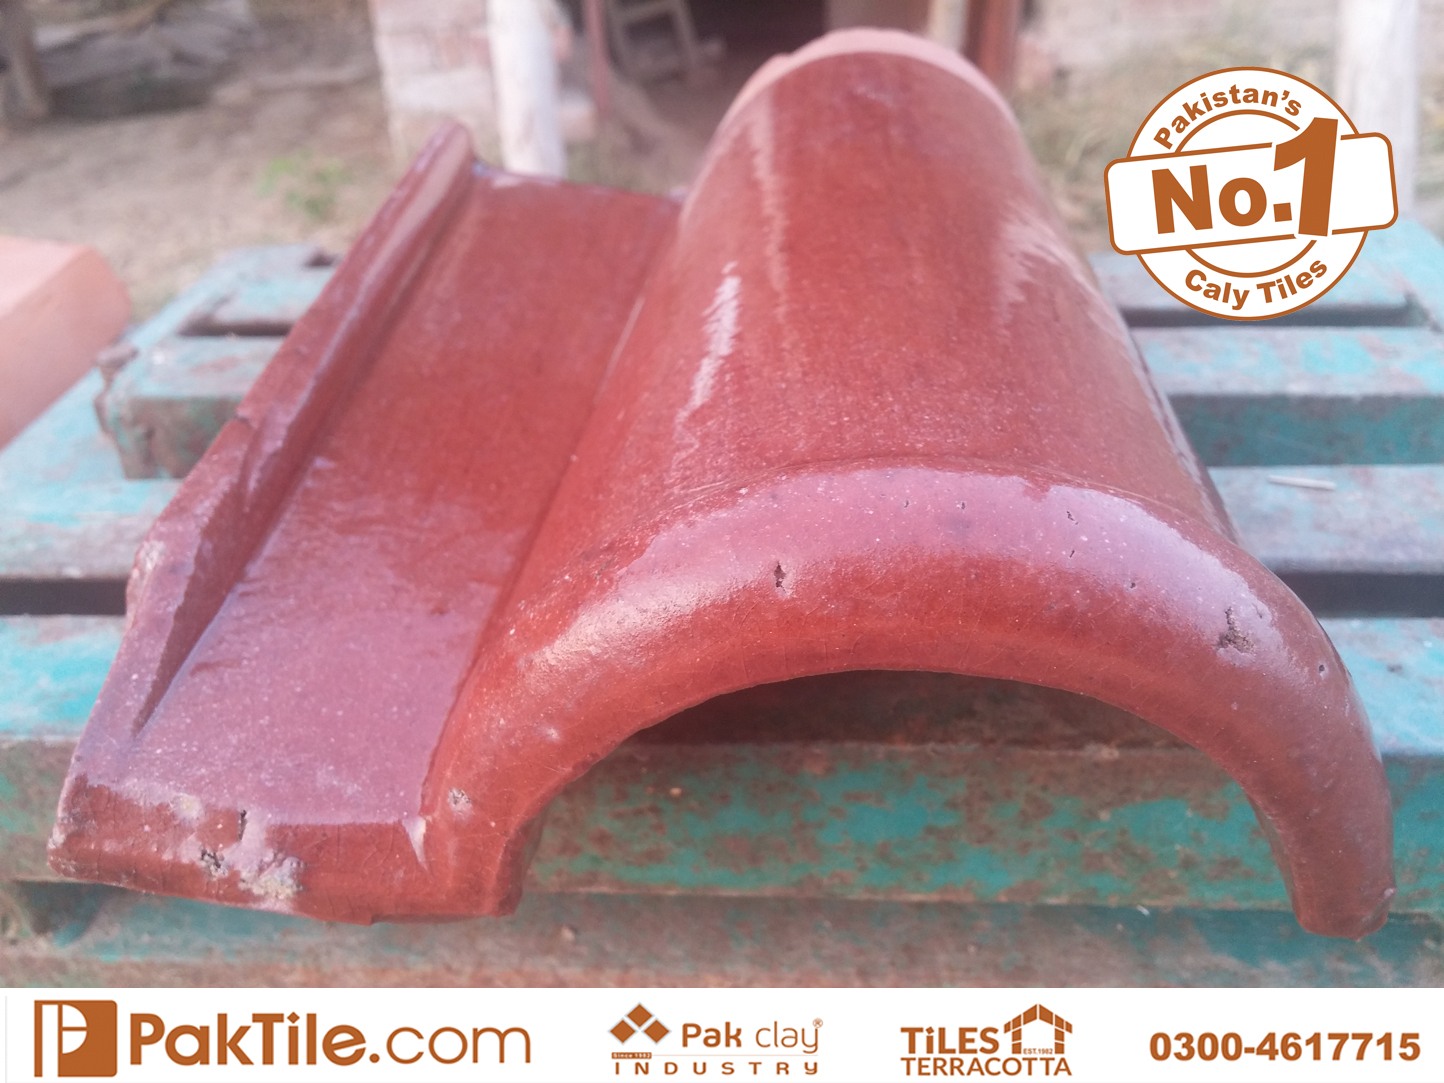 0 Pak clay red terracotta bricks spanish khaprail roofing tiles design shop price in lahore images